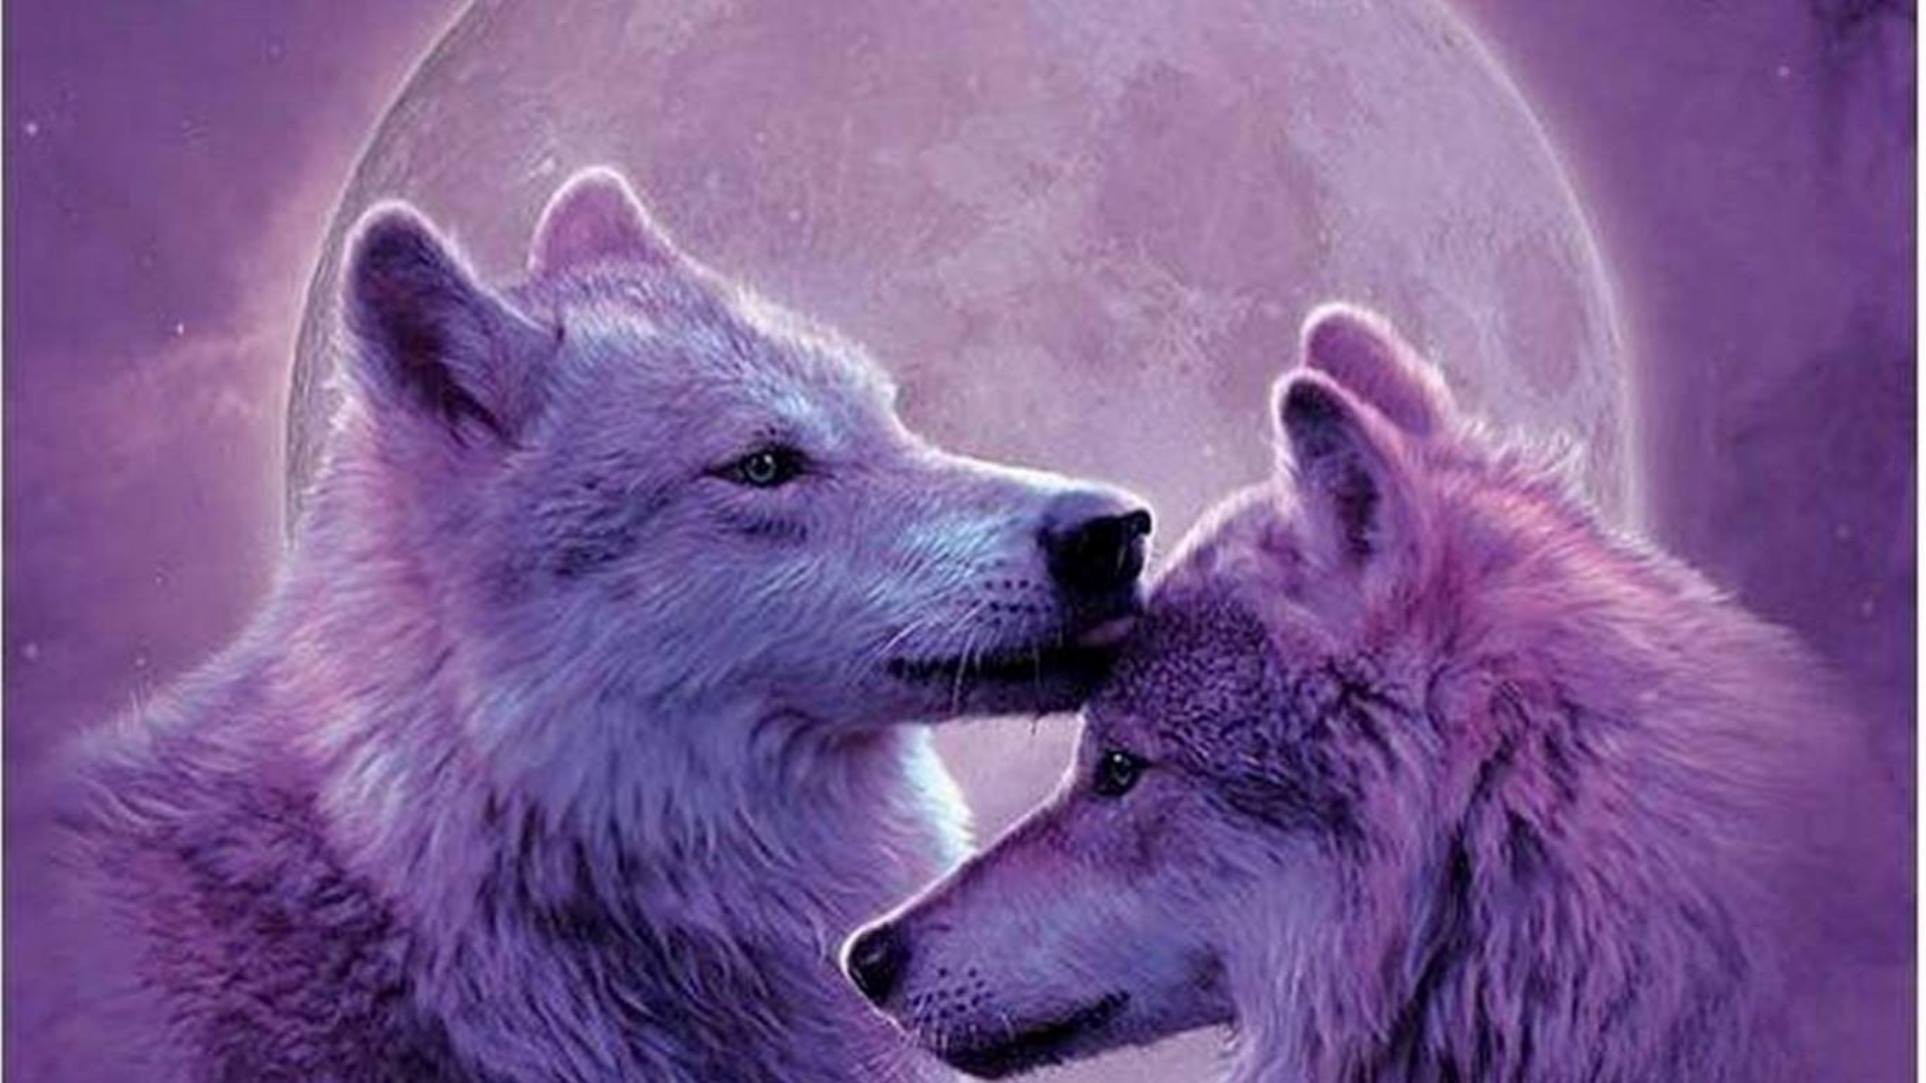 other moonwolves lobos animais painting moon nature lobo 53 pictures